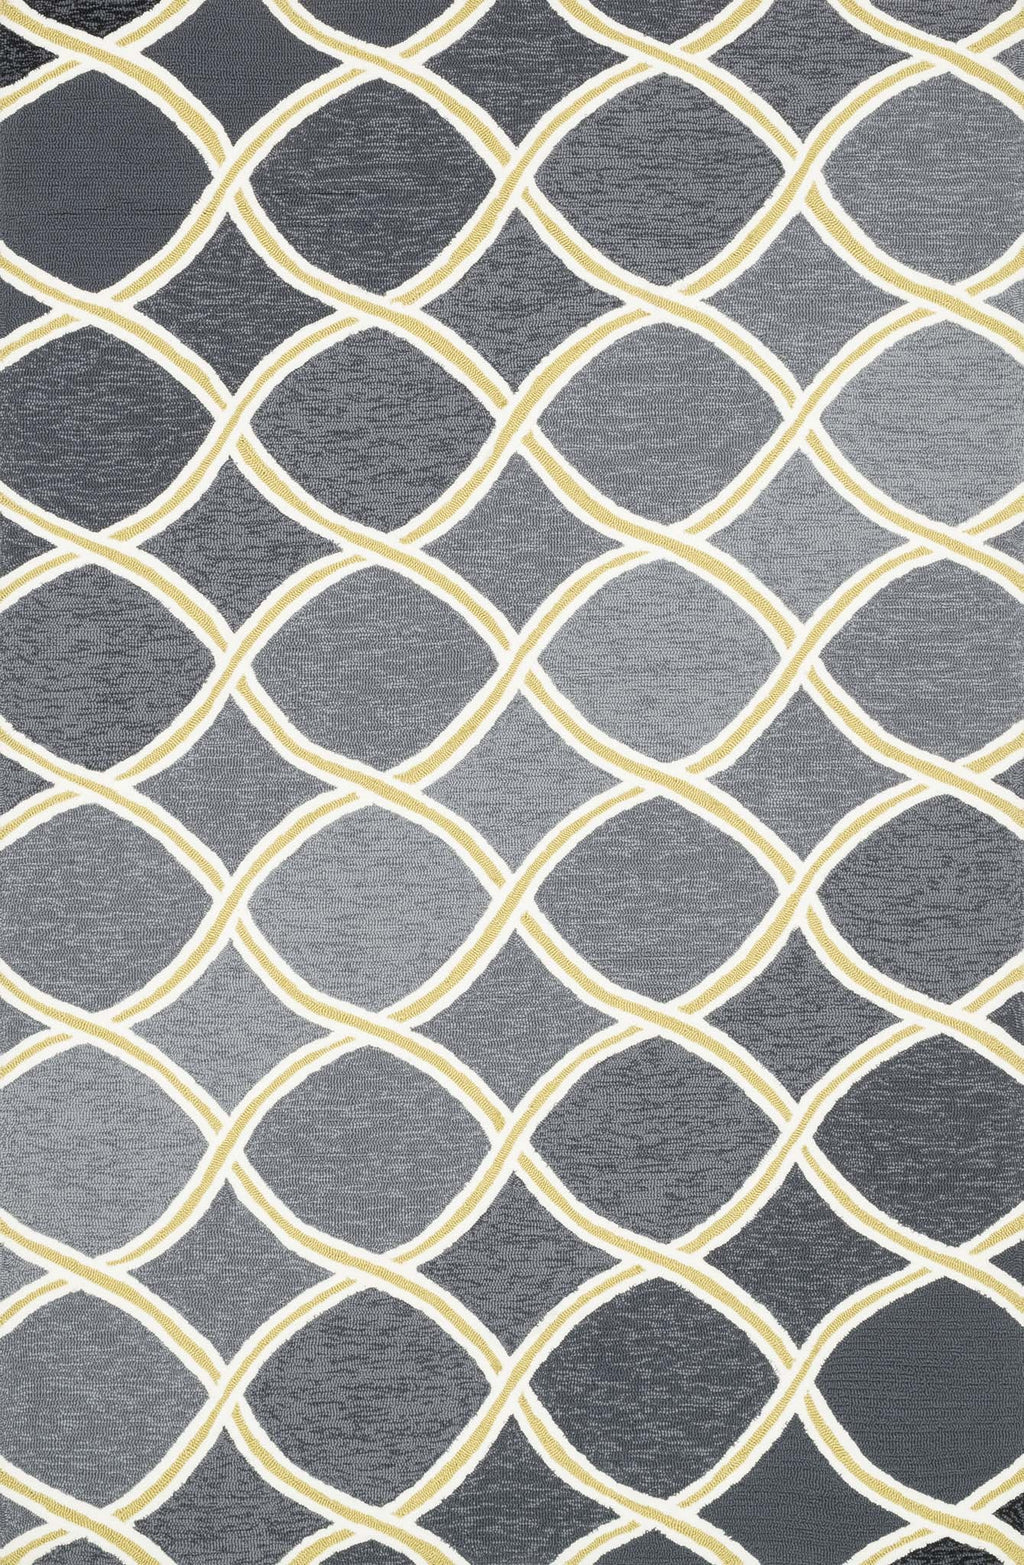 VENICE BEACH Collection Rug  in  CHARCOAL / LIME Gray Small Hand-Hooked Polypropylene